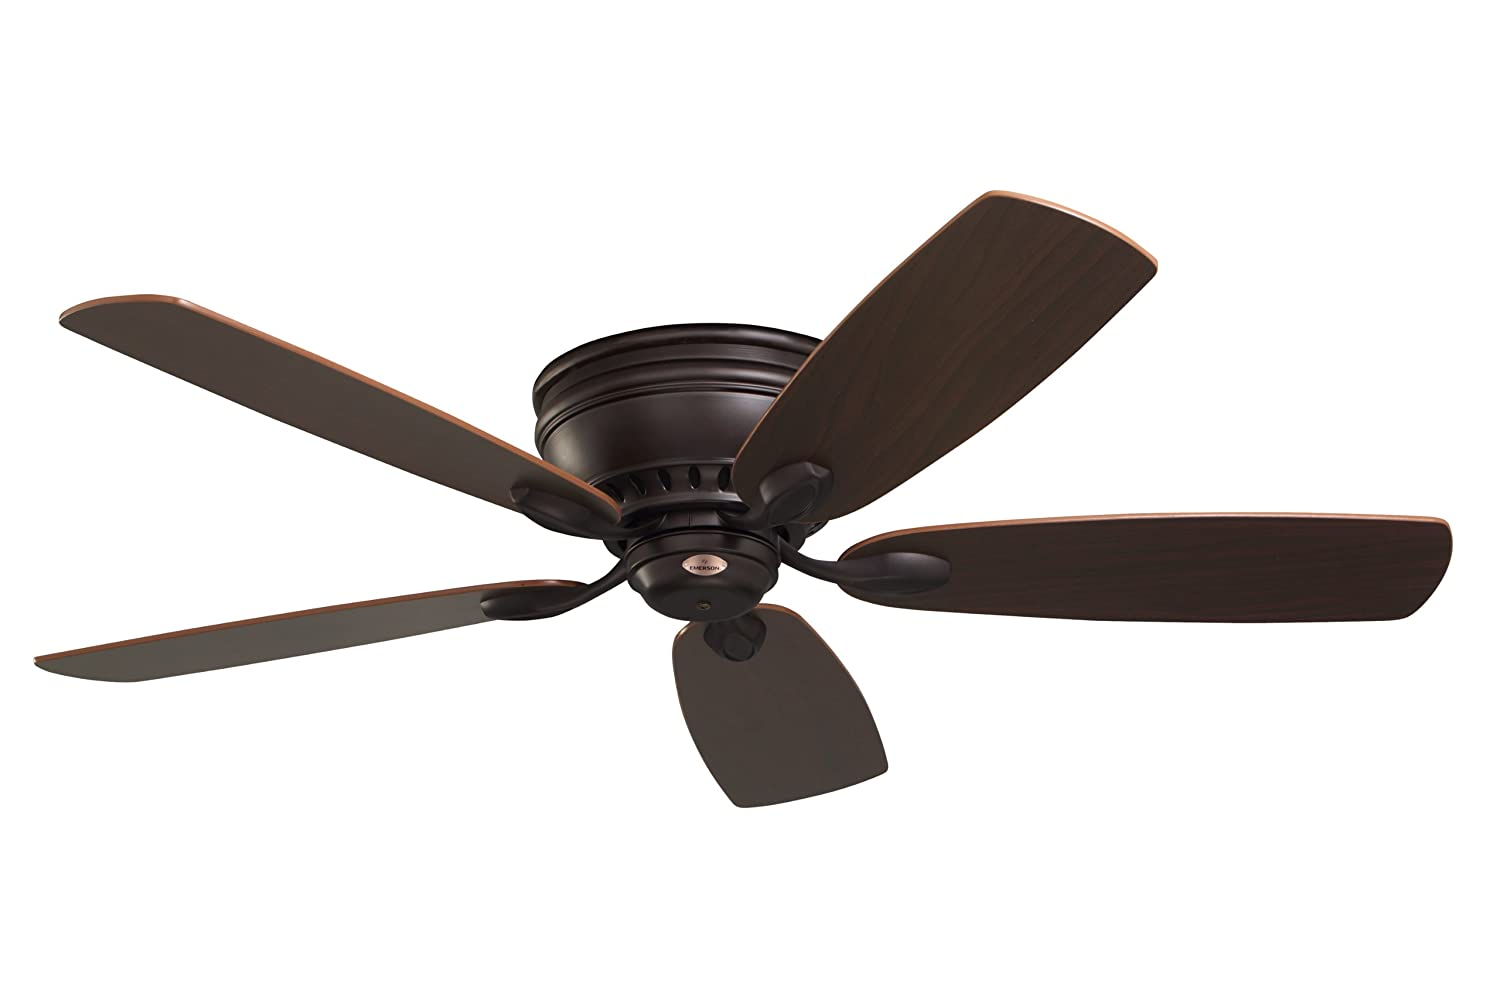 Emerson ceiling fans cf905orb prima snugger 52 inch low profile emerson ceiling fans cf905orb prima snugger 52 inch low profile ceiling fan with wall control light kit adaptable oil rubbed bronze finish flush mount mozeypictures Images